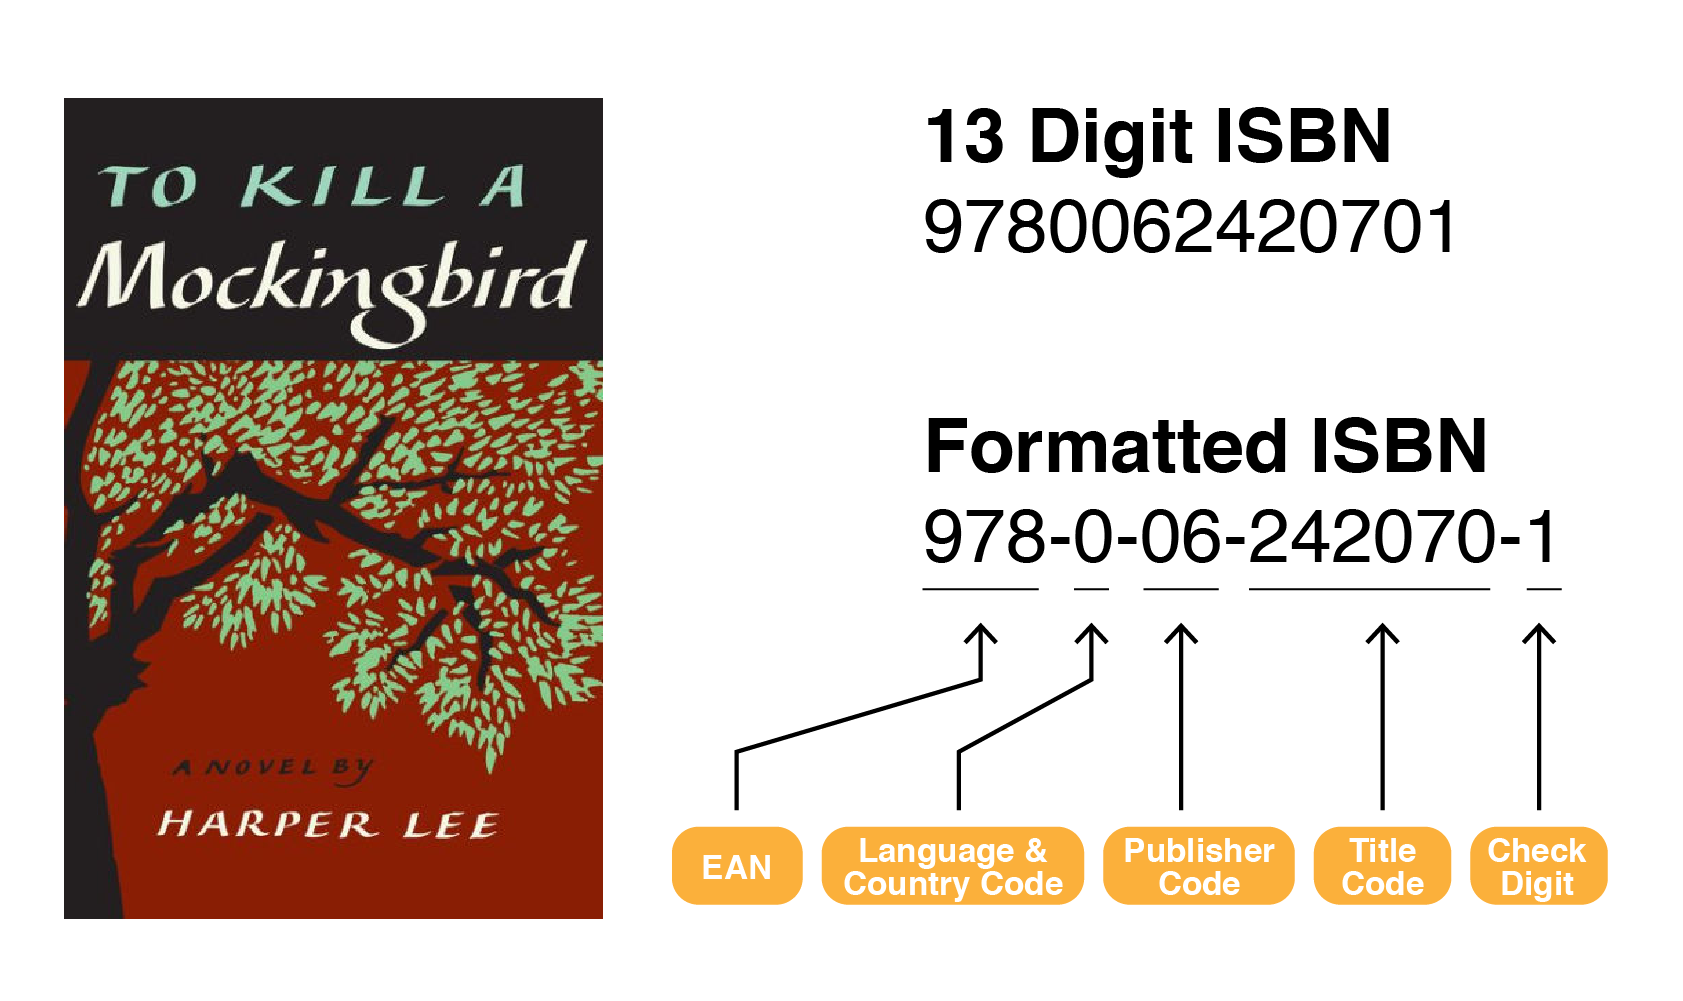 Formatted ISBN codes contain information on country of publication, language, as well as the size of the publishing house